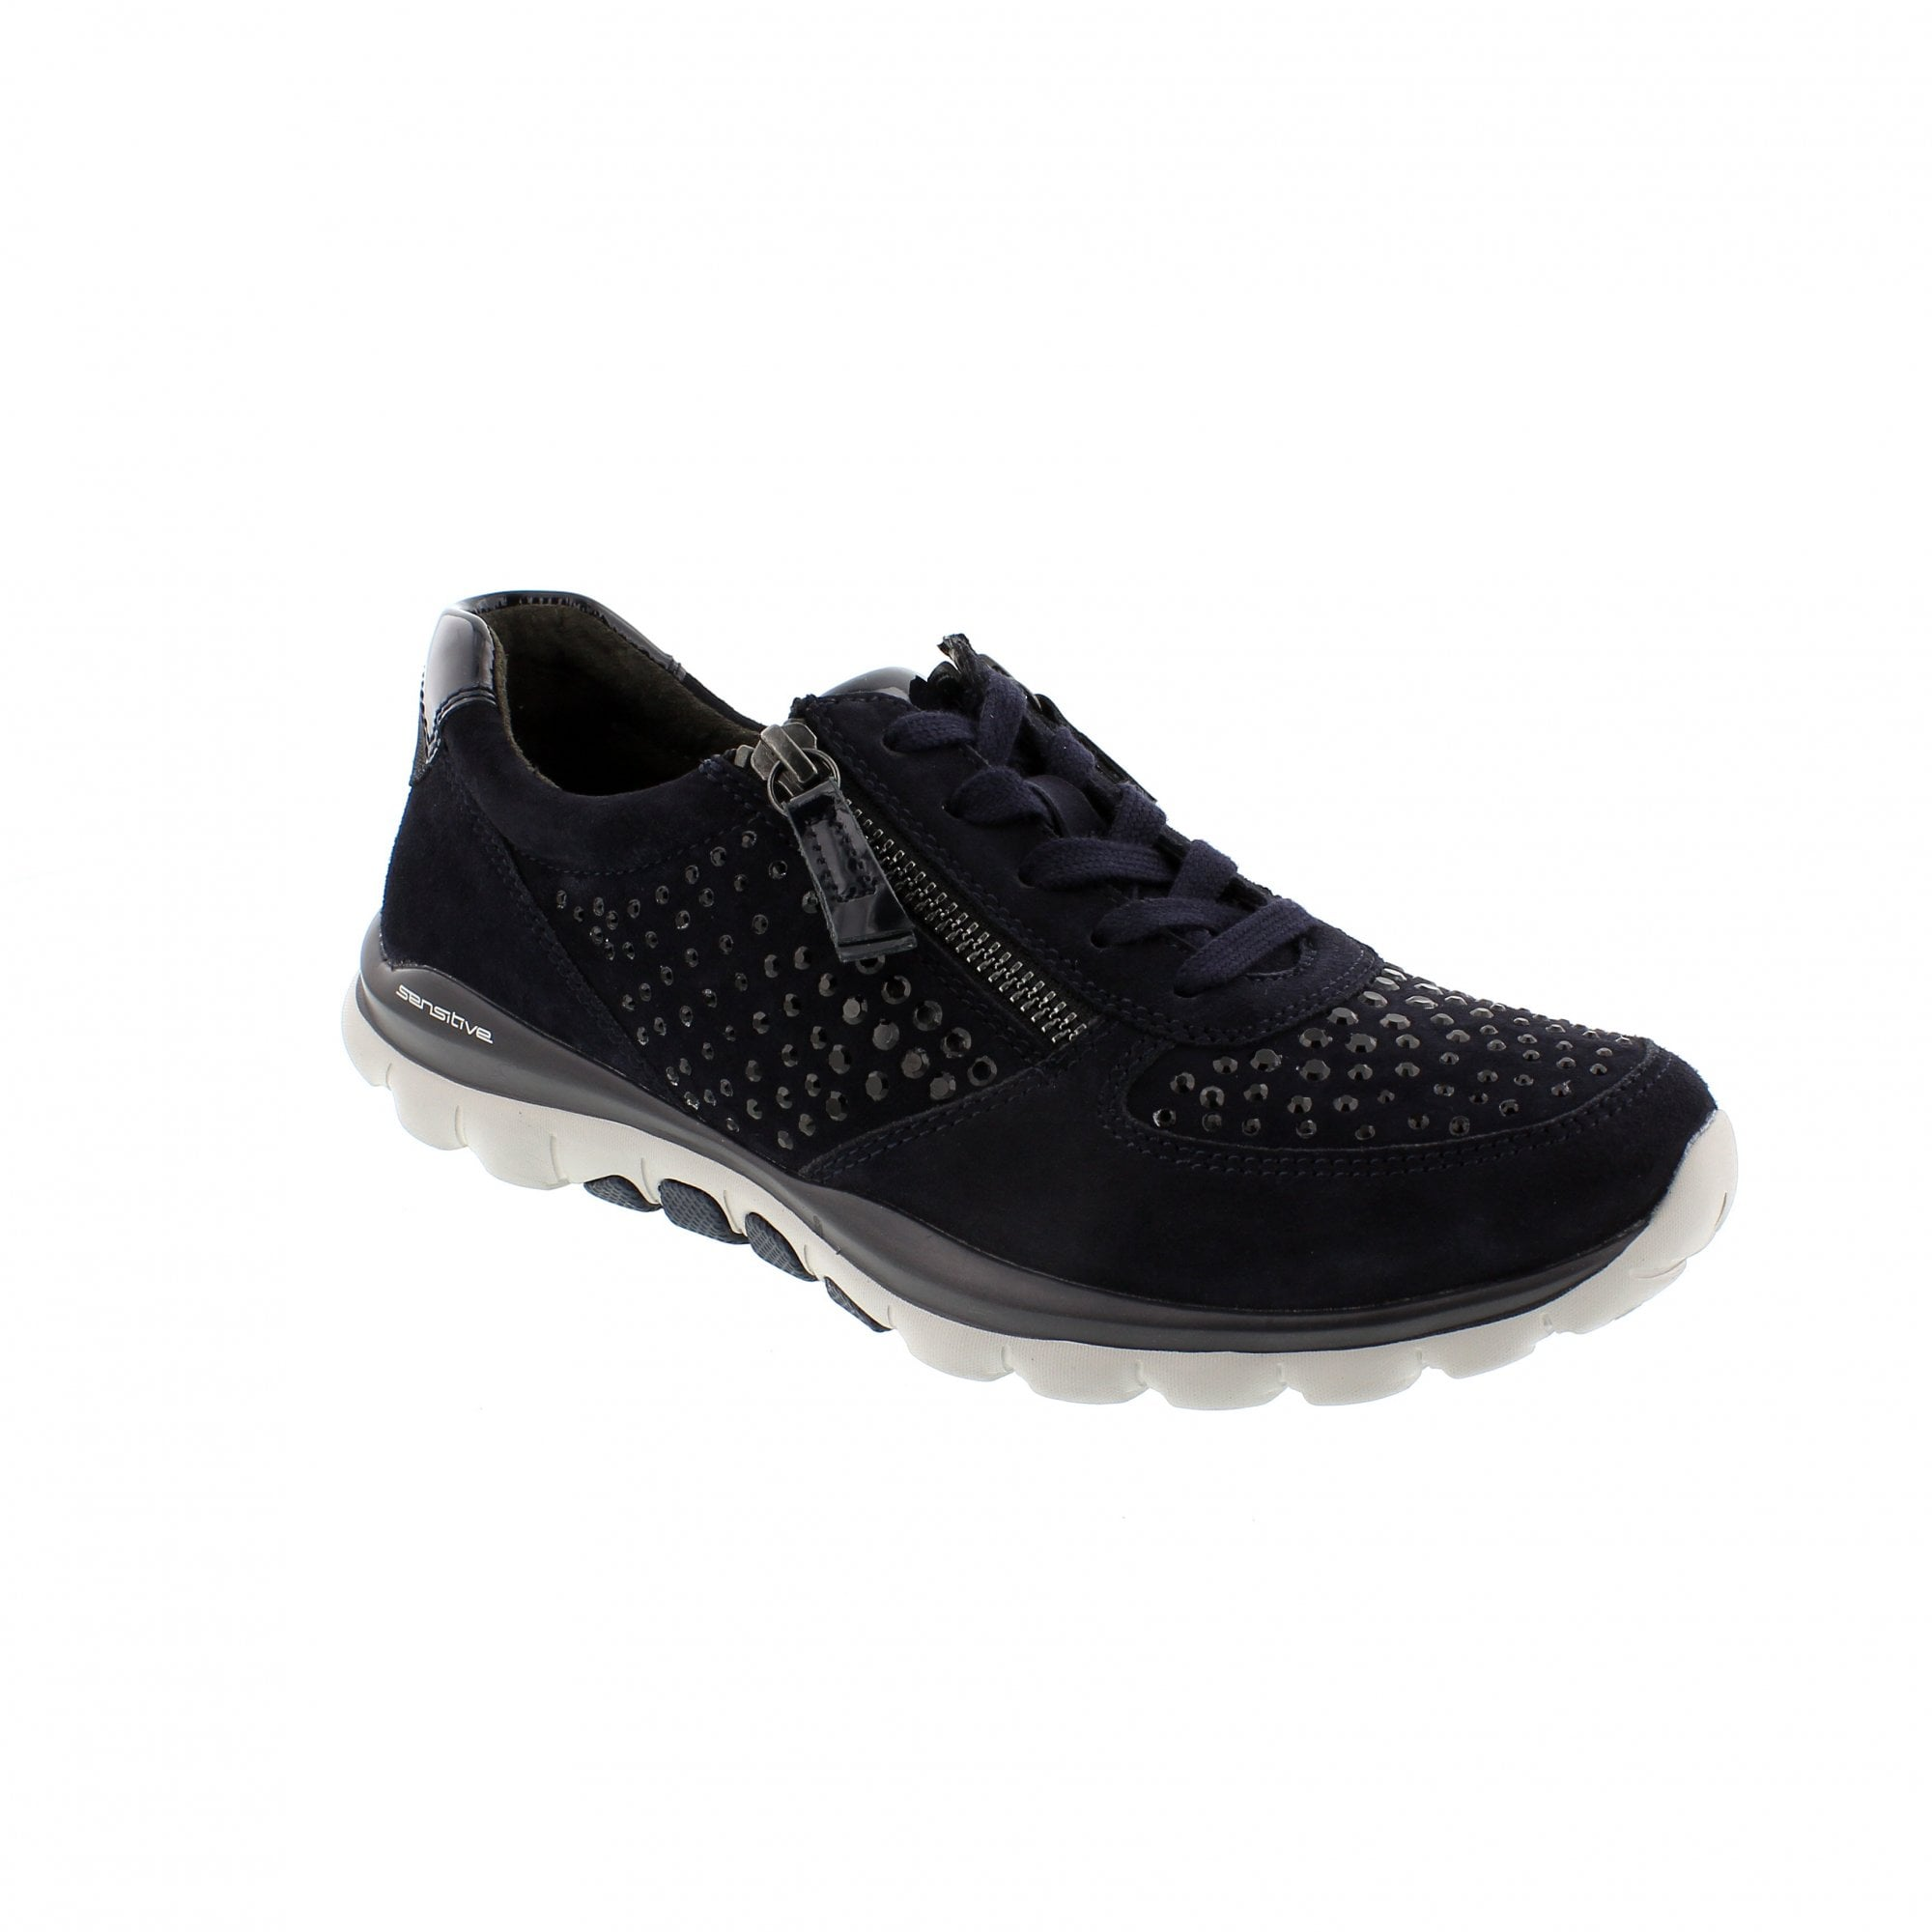 b549c48ca4d25 Gabor Fantastic 96-968-86 Navy Suede Womens Trainers   Rogerson Shoes